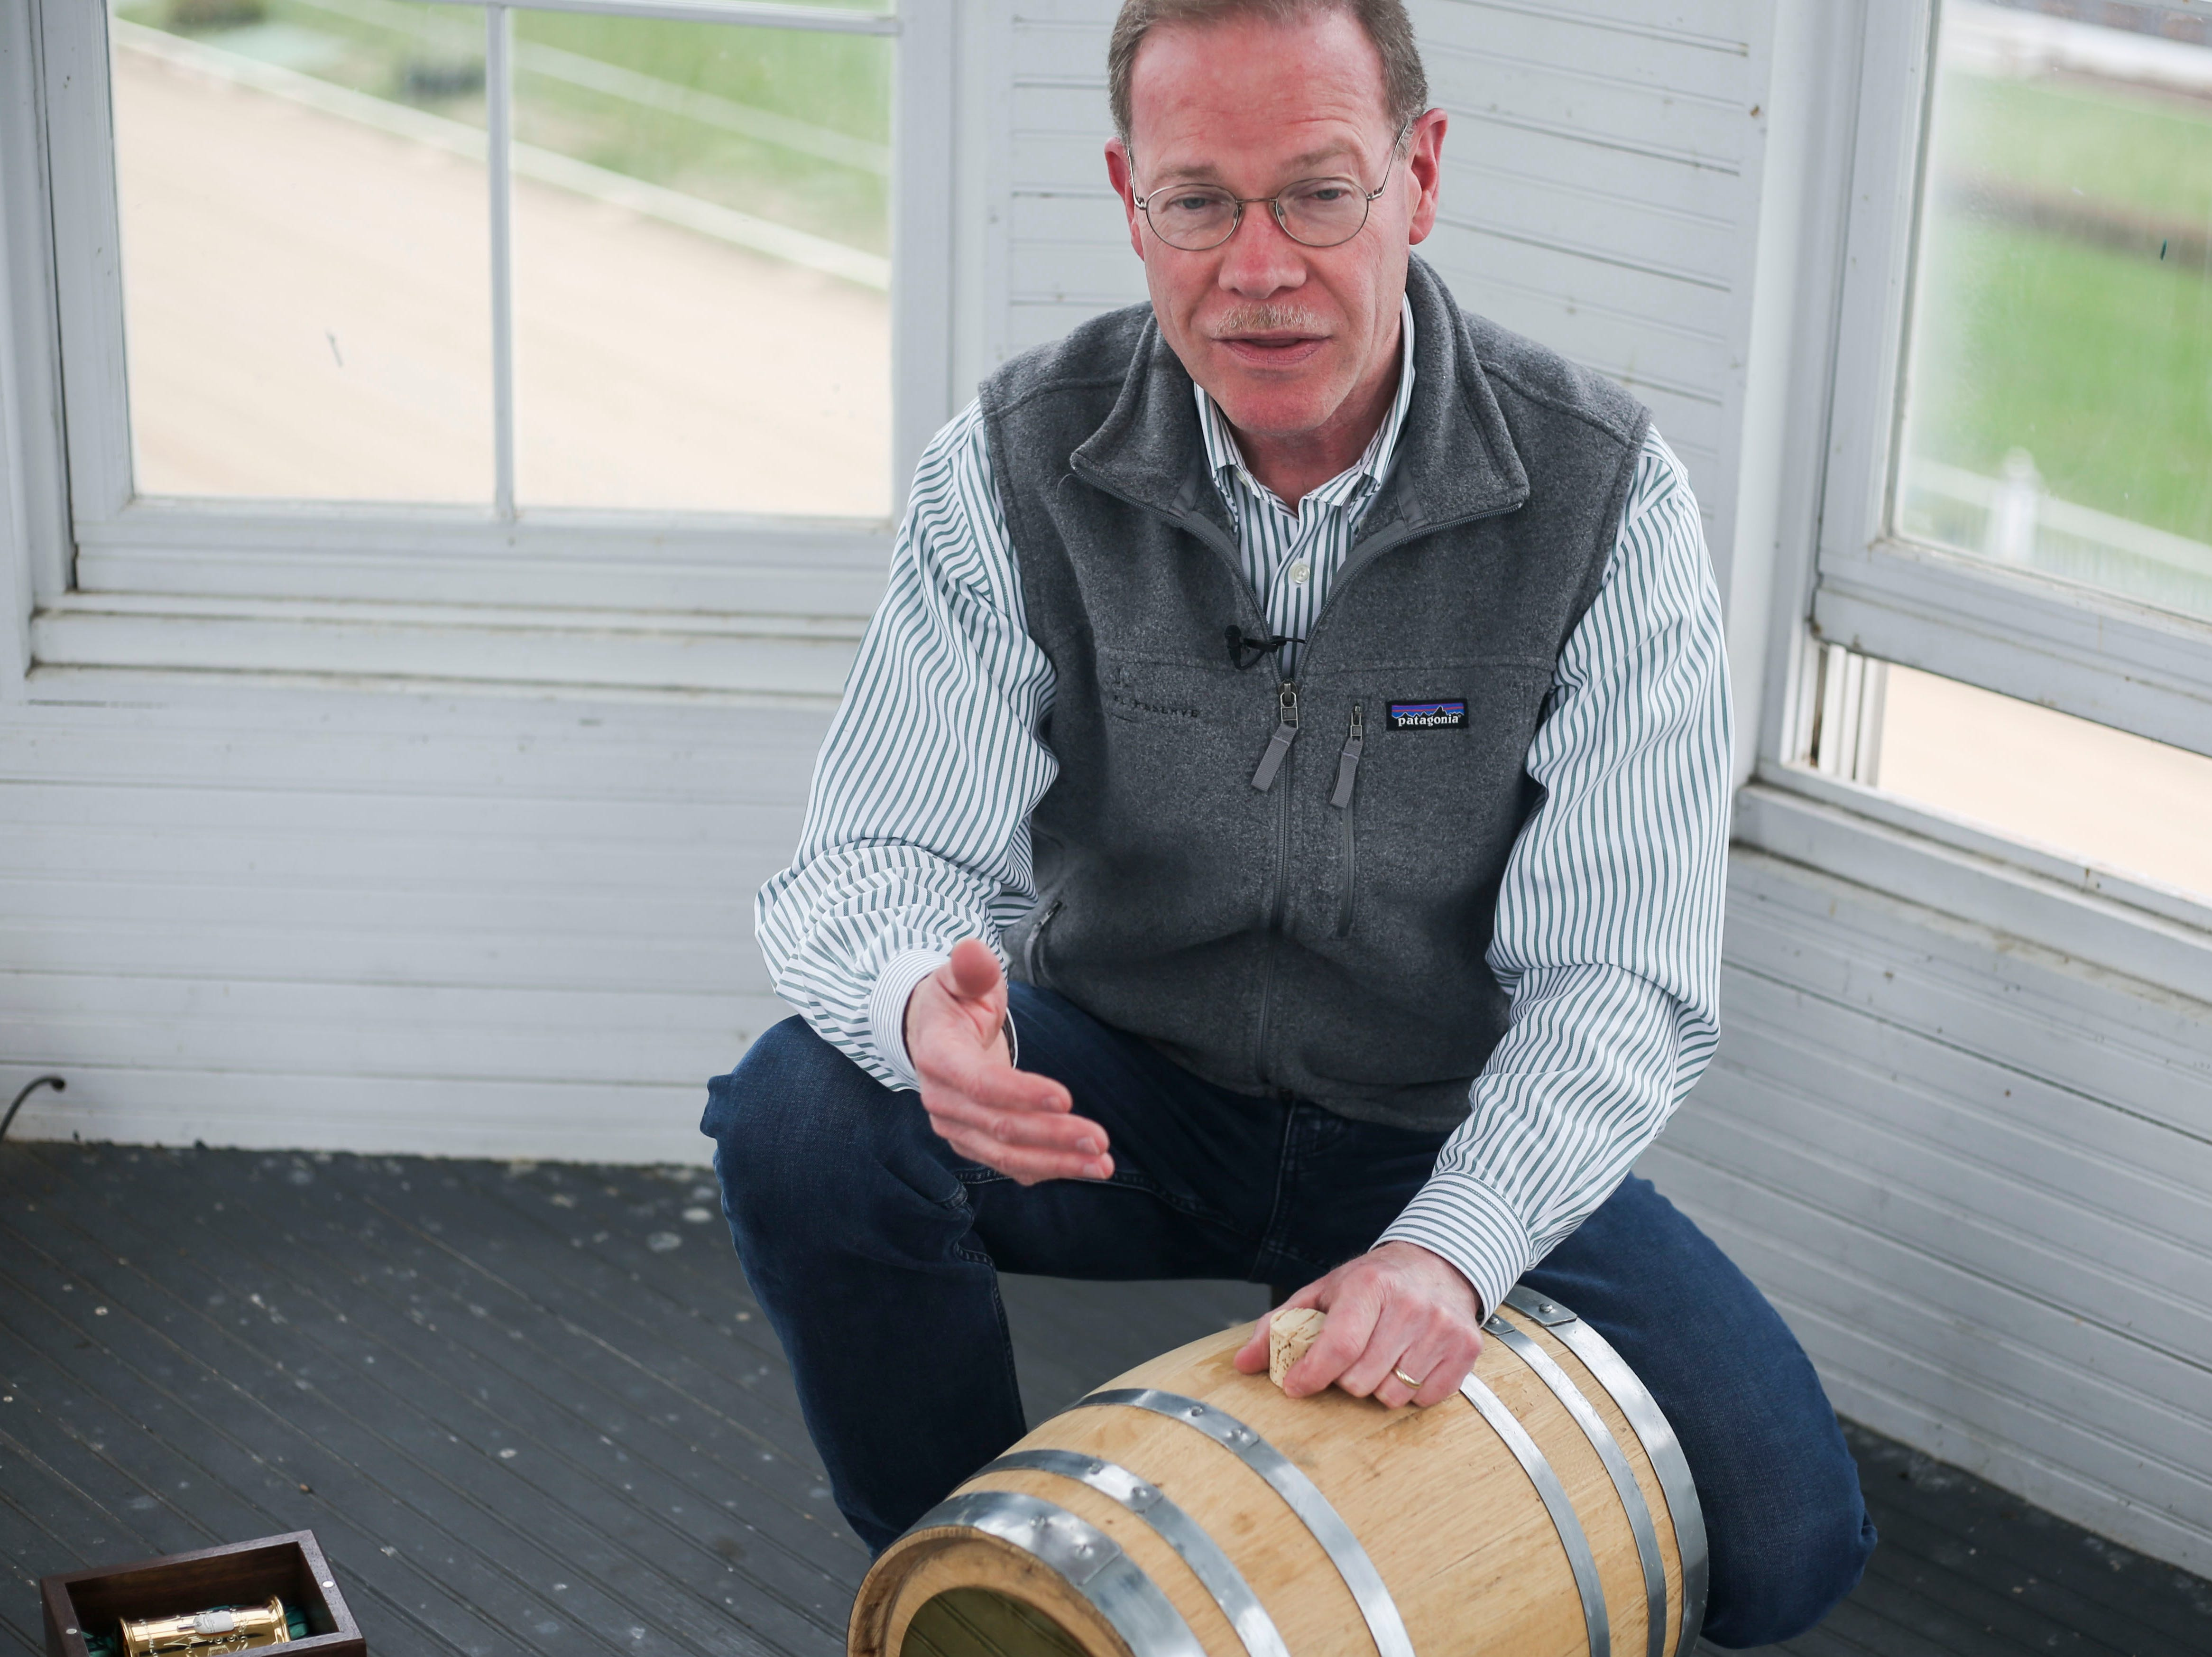 Chris Morris, master distiller at Woodford Reserve, explains the process of aging the simple syrup used in this year's 145th Kentucky Derby Woodford Reserve $1,000 mint julep at Churchill Downs in Louisville, Ky. on Thursday, March 5, 2019. The simple syrup is made from locally sourced limestone water, Hosey Honey (family owned and operated in Midway, Ky.), and mint grown on the Churchill Downs campus, and aged for 145 day in one of the spires in a custom made oak barrel.